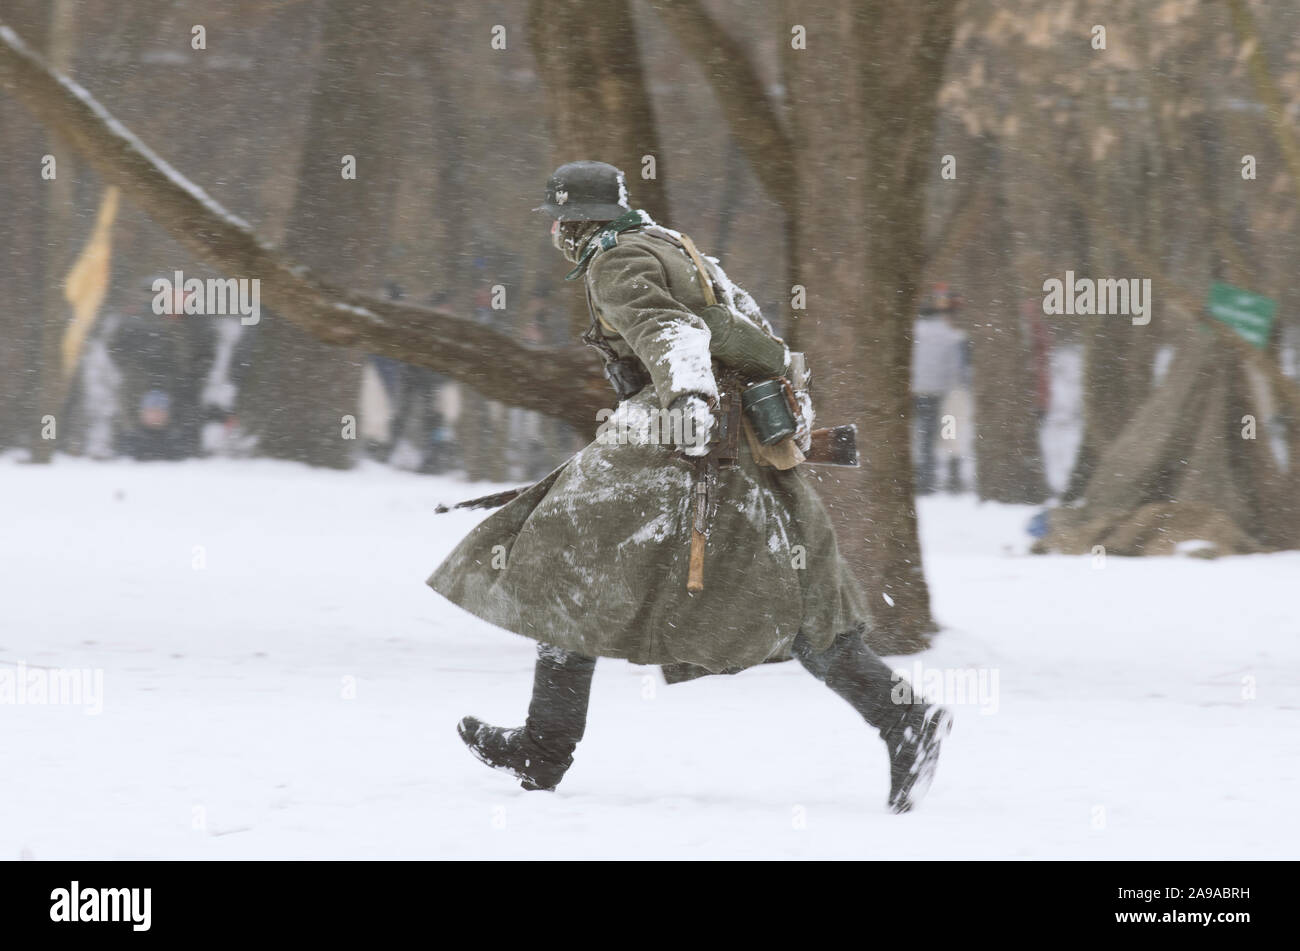 St. Petersburg (Russia) - February 23, 2017: Military historical reconstruction of events of World War II. Running german Wehrmacht soldier with a rif Stock Photo